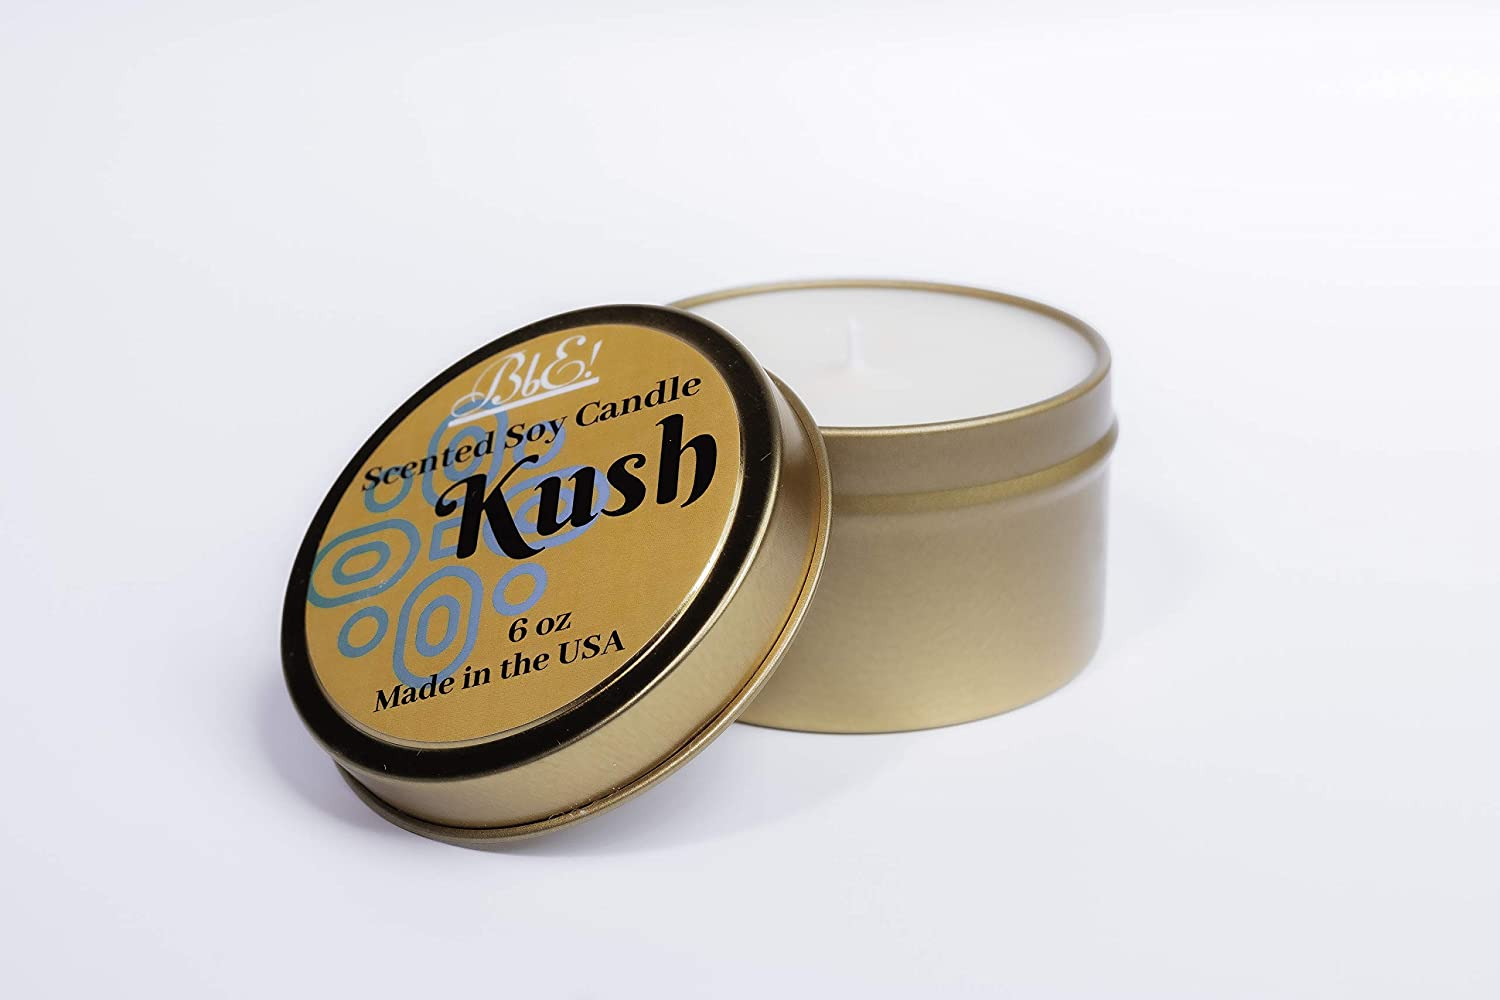 Beautiful by E! Kush Scent Gift or Travel Scented Soy Candle